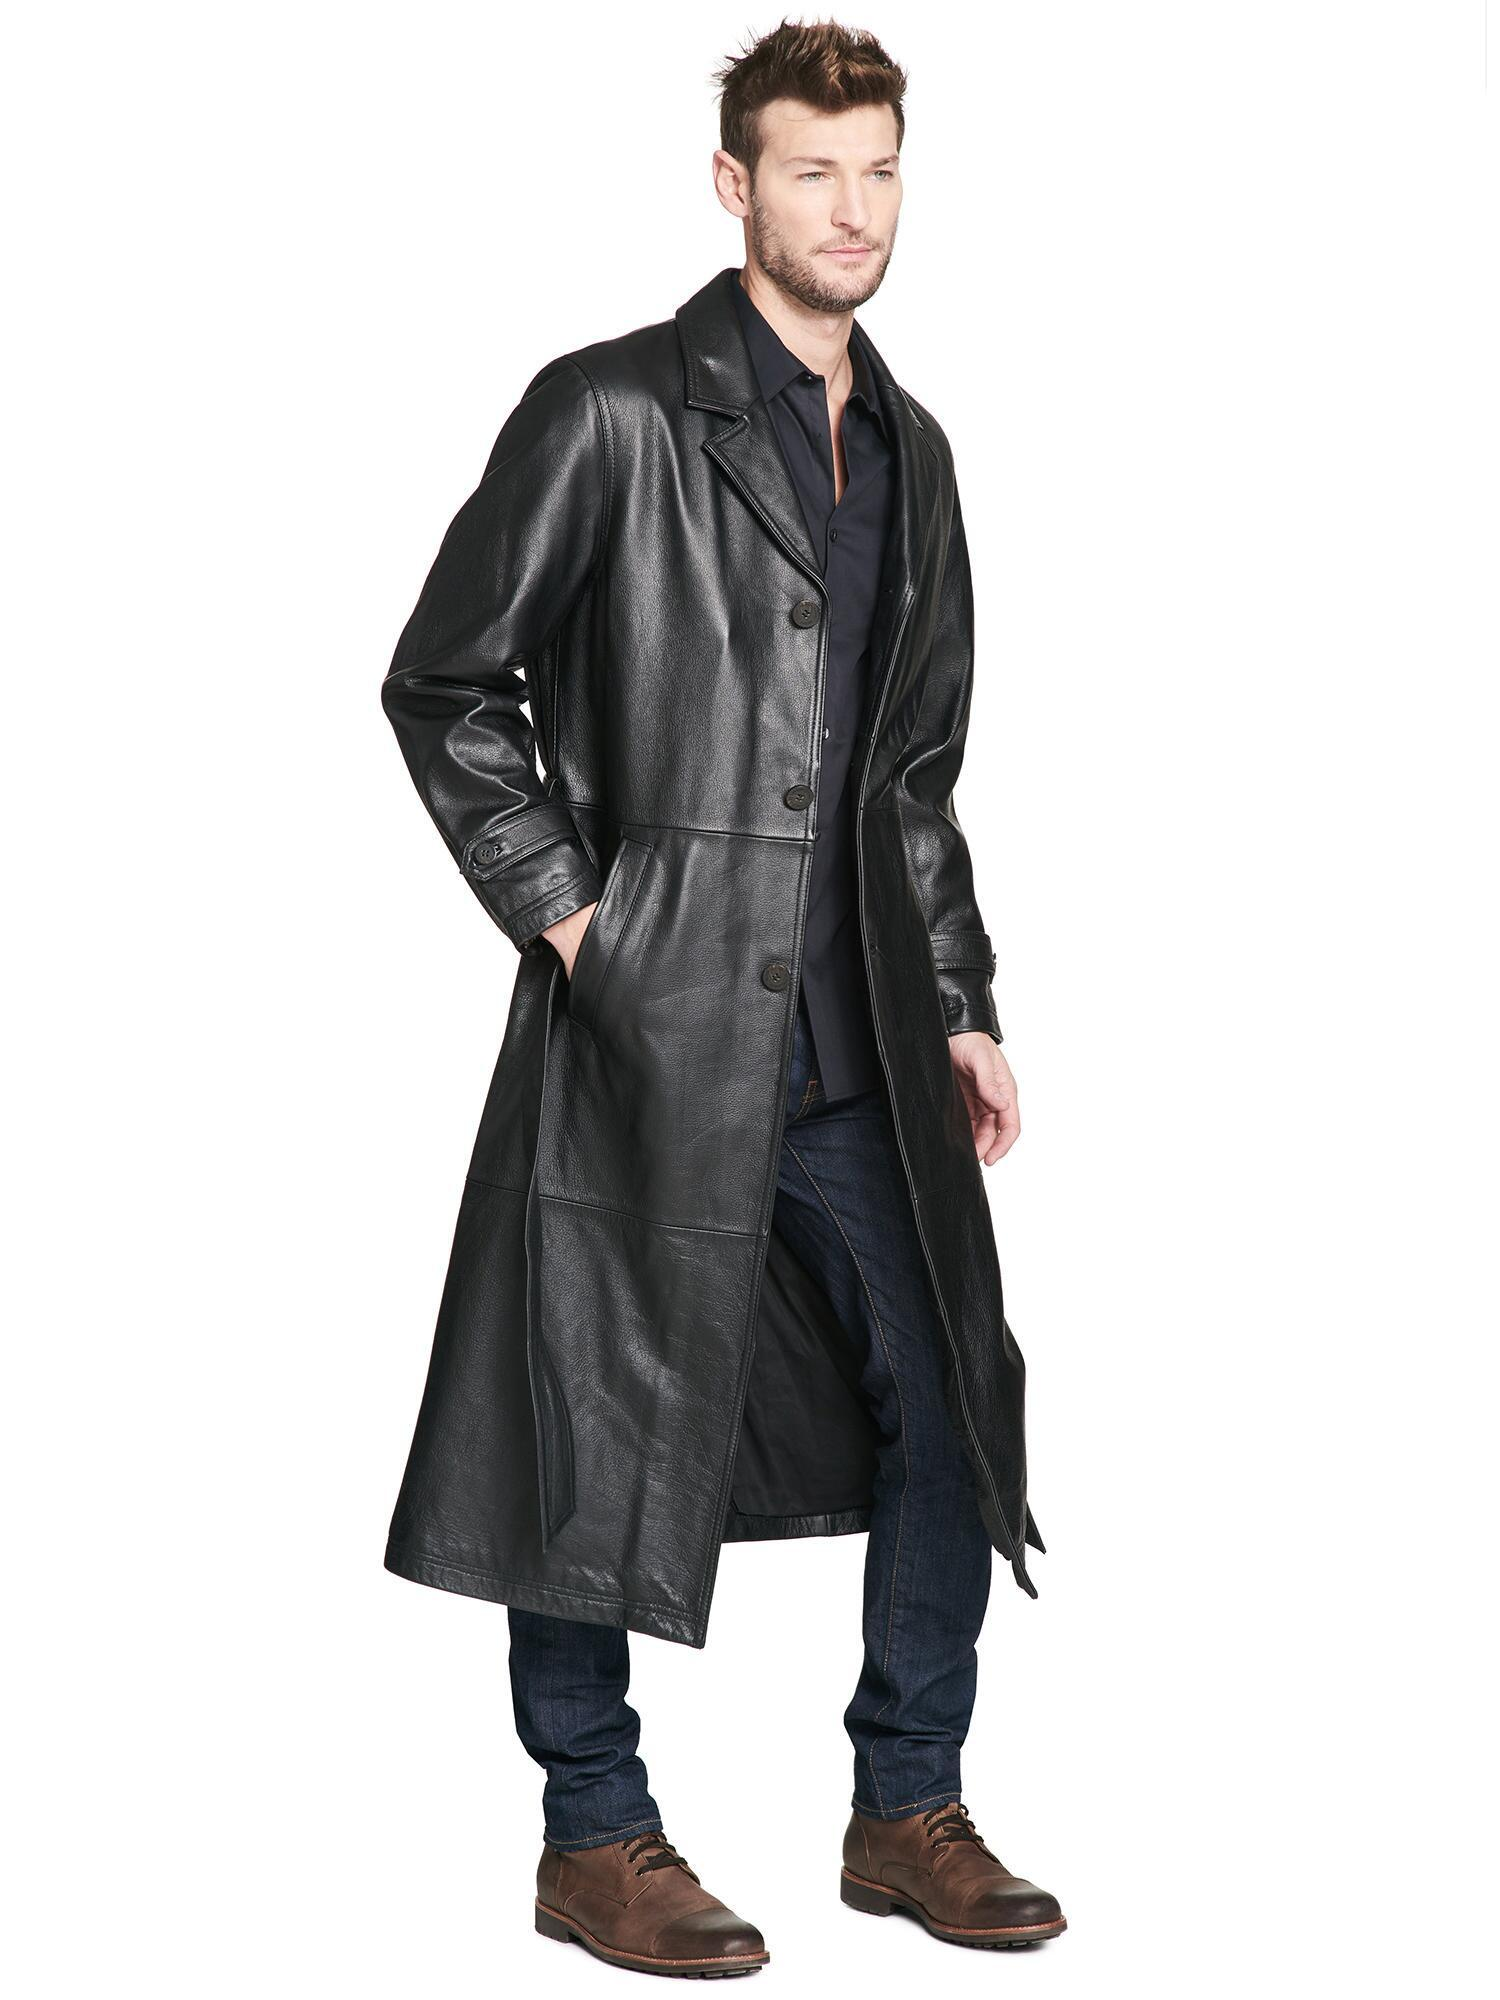 Wilsons Leather Oliver Belted Leather Trench Coat In Black For Men Lyst